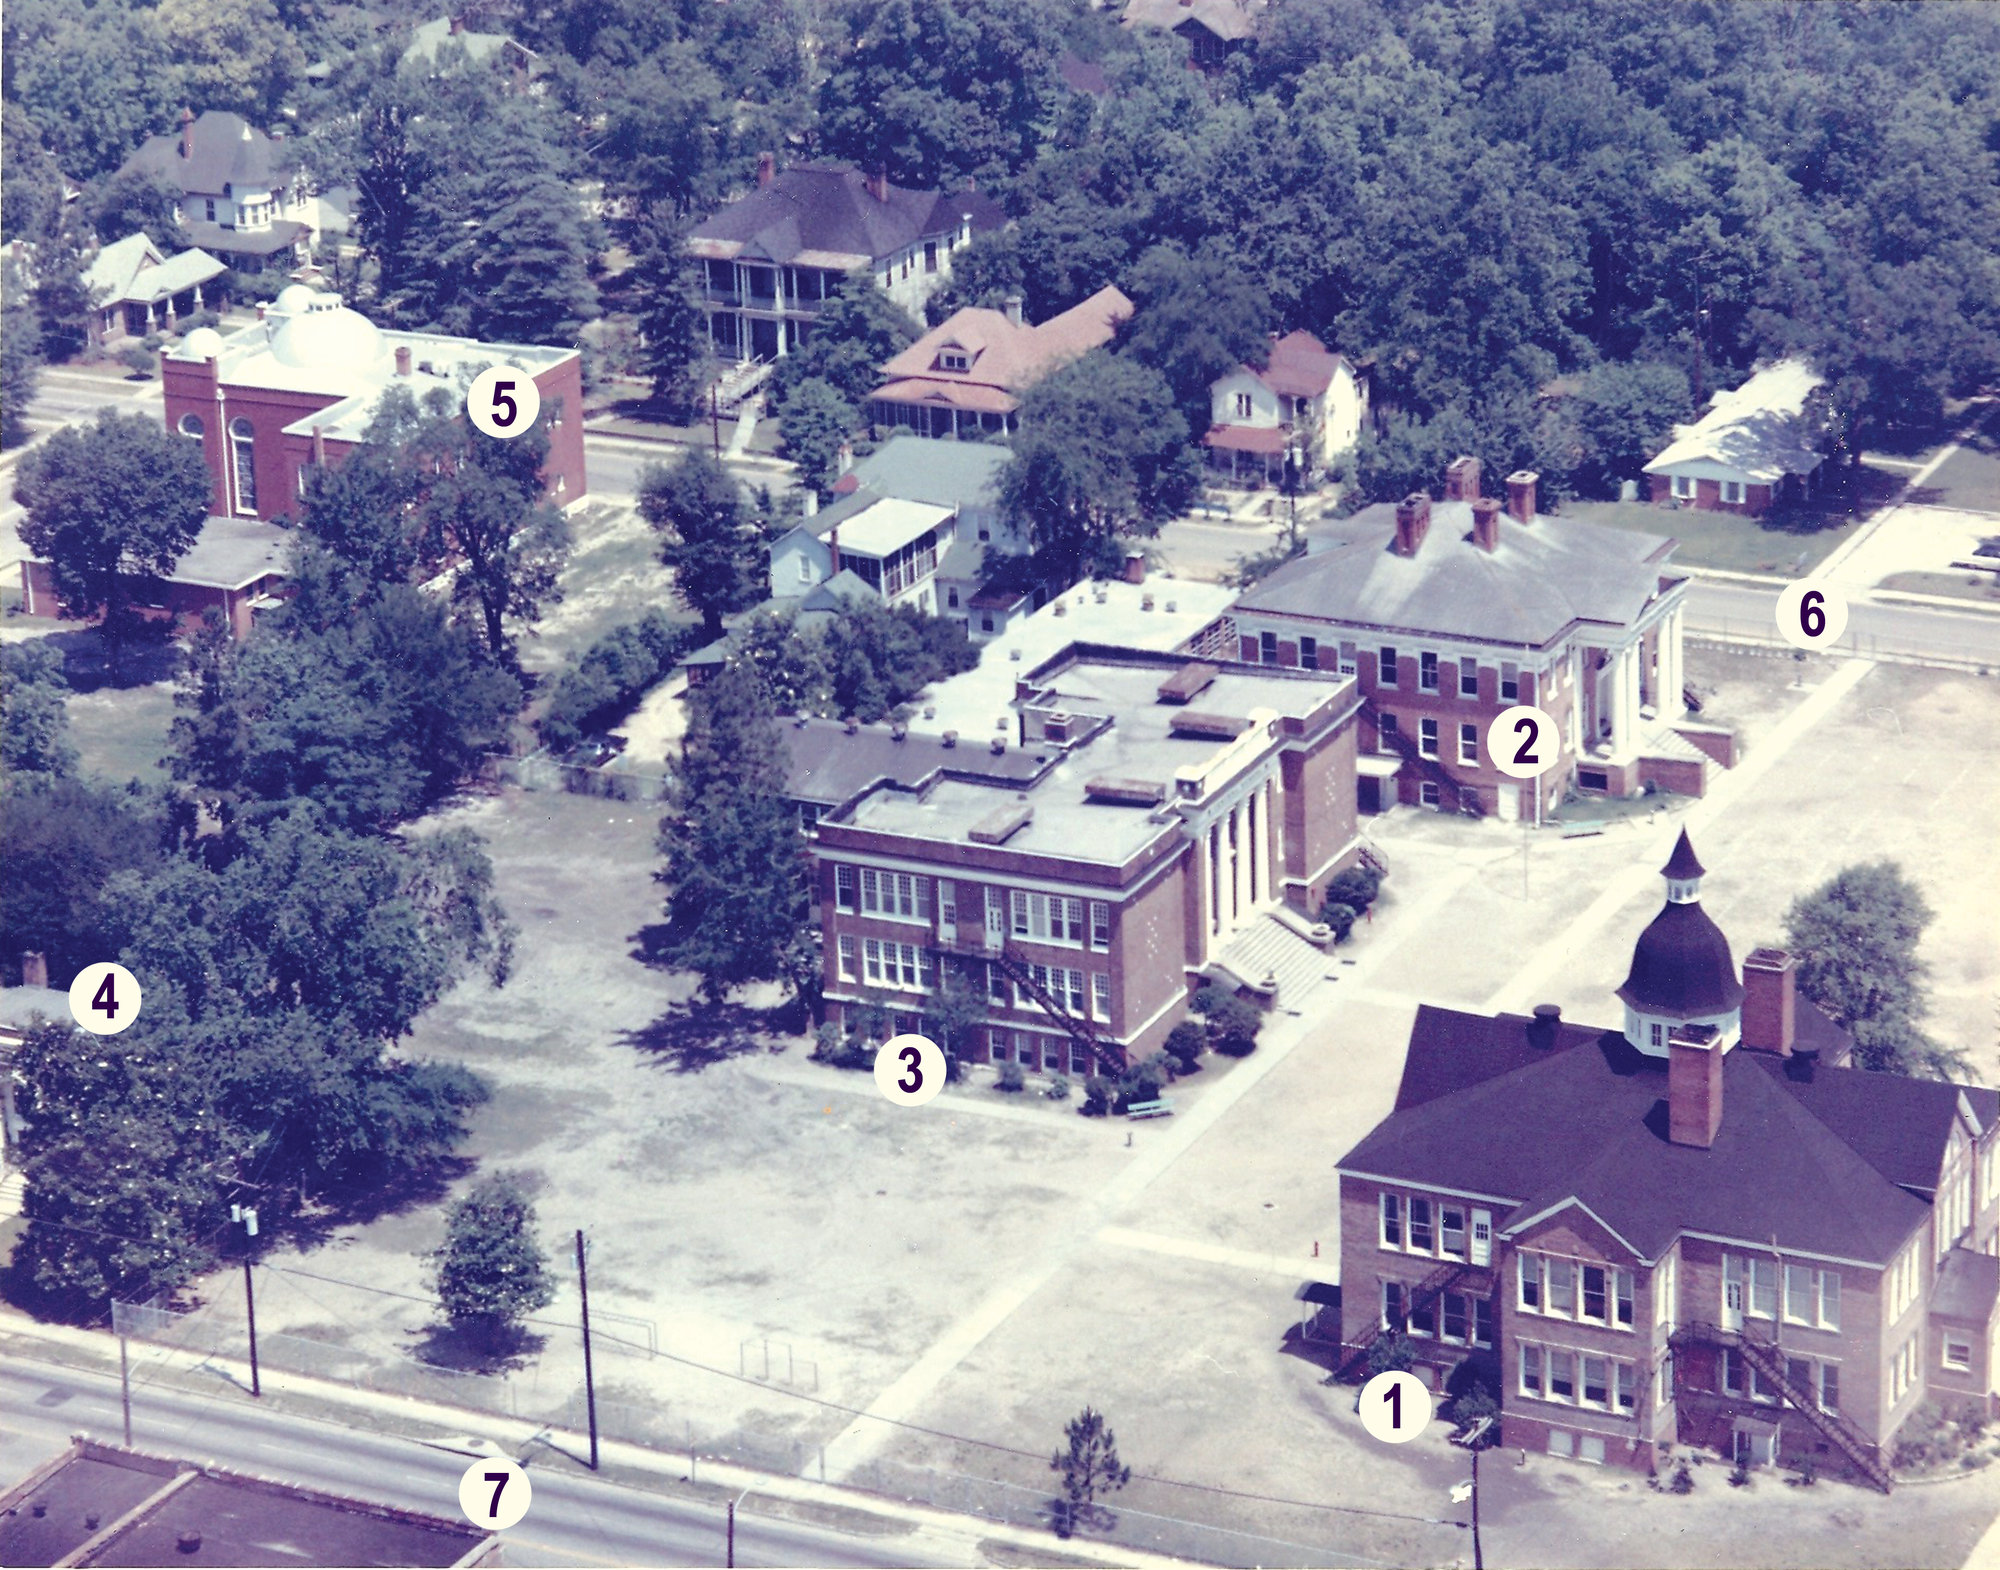 This overhead photo looking northwest shows the block  between Hampton Avenue (6) and Liberty Street (7), between Washington Street (out of the photo to the right) and Church Street (out of the photo to the left). Three school buildings once occupied this block, 1) Washington School, 2) Hampton School, and 3) Central School, along with the old Carnegie Library (4) and Temple Sinai (5).